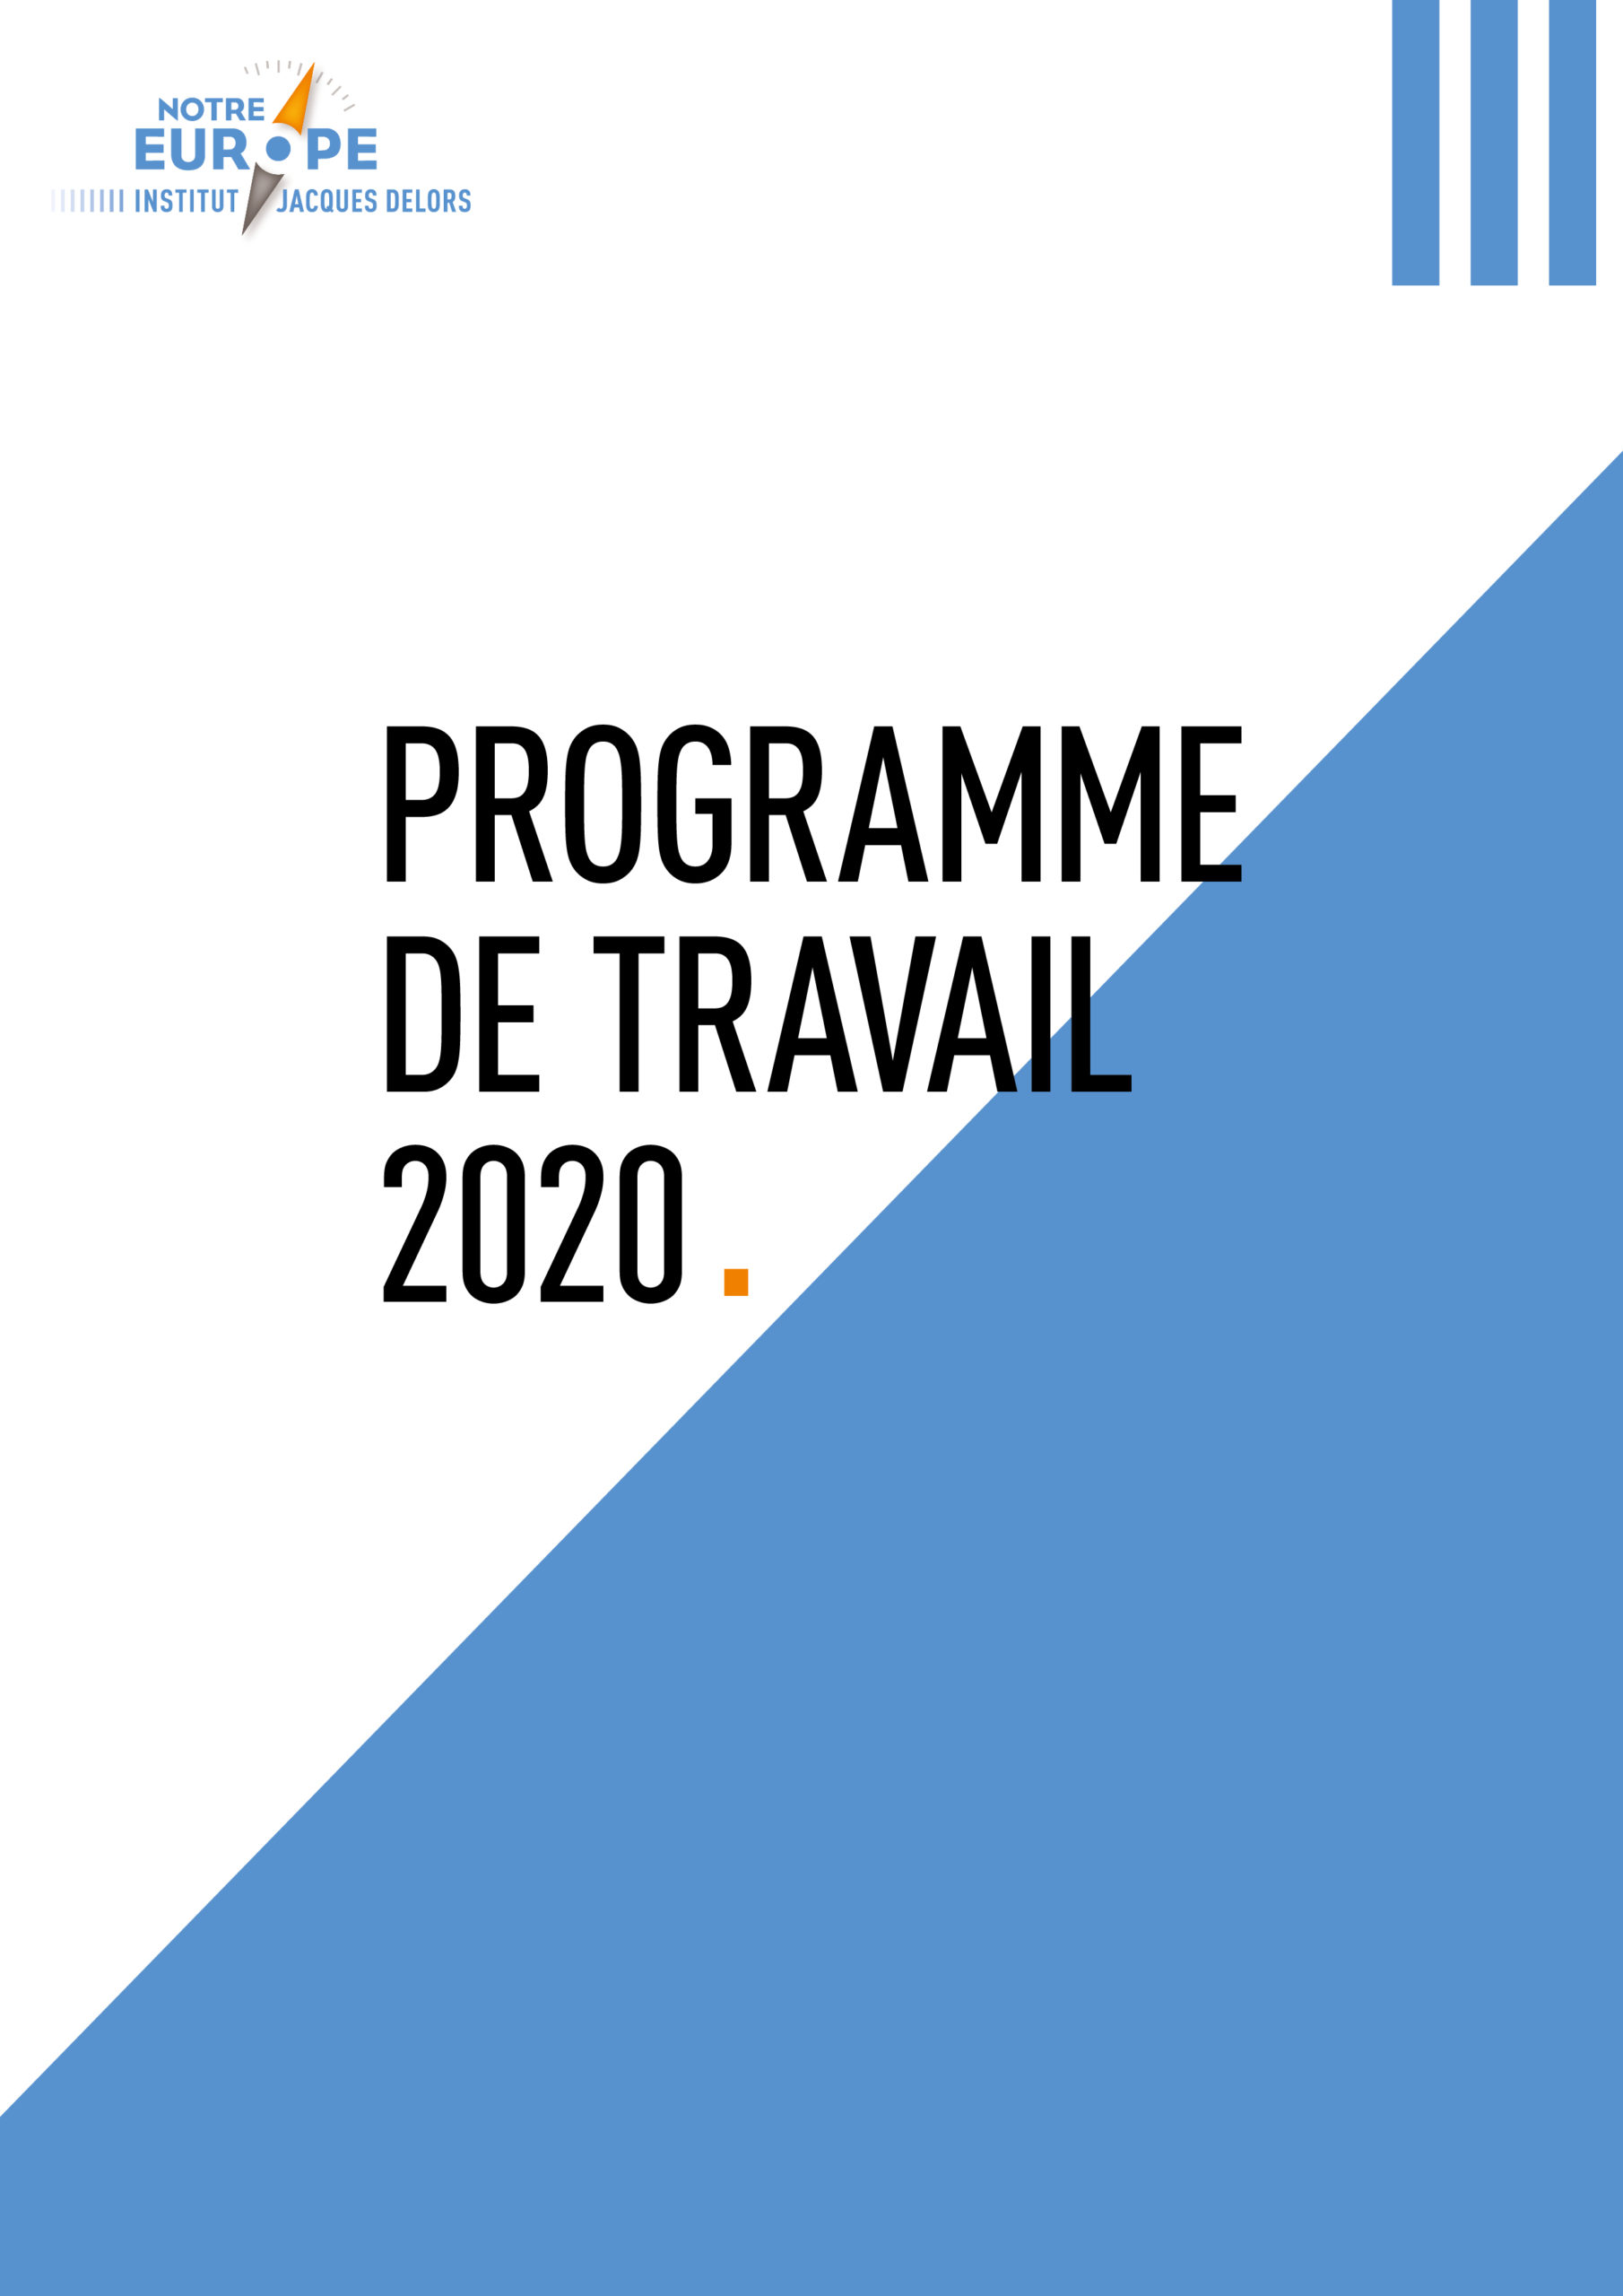 https://institutdelors.eu/wp-content/uploads/2019/02/2020_Programme-de-travail_IJD.pdf